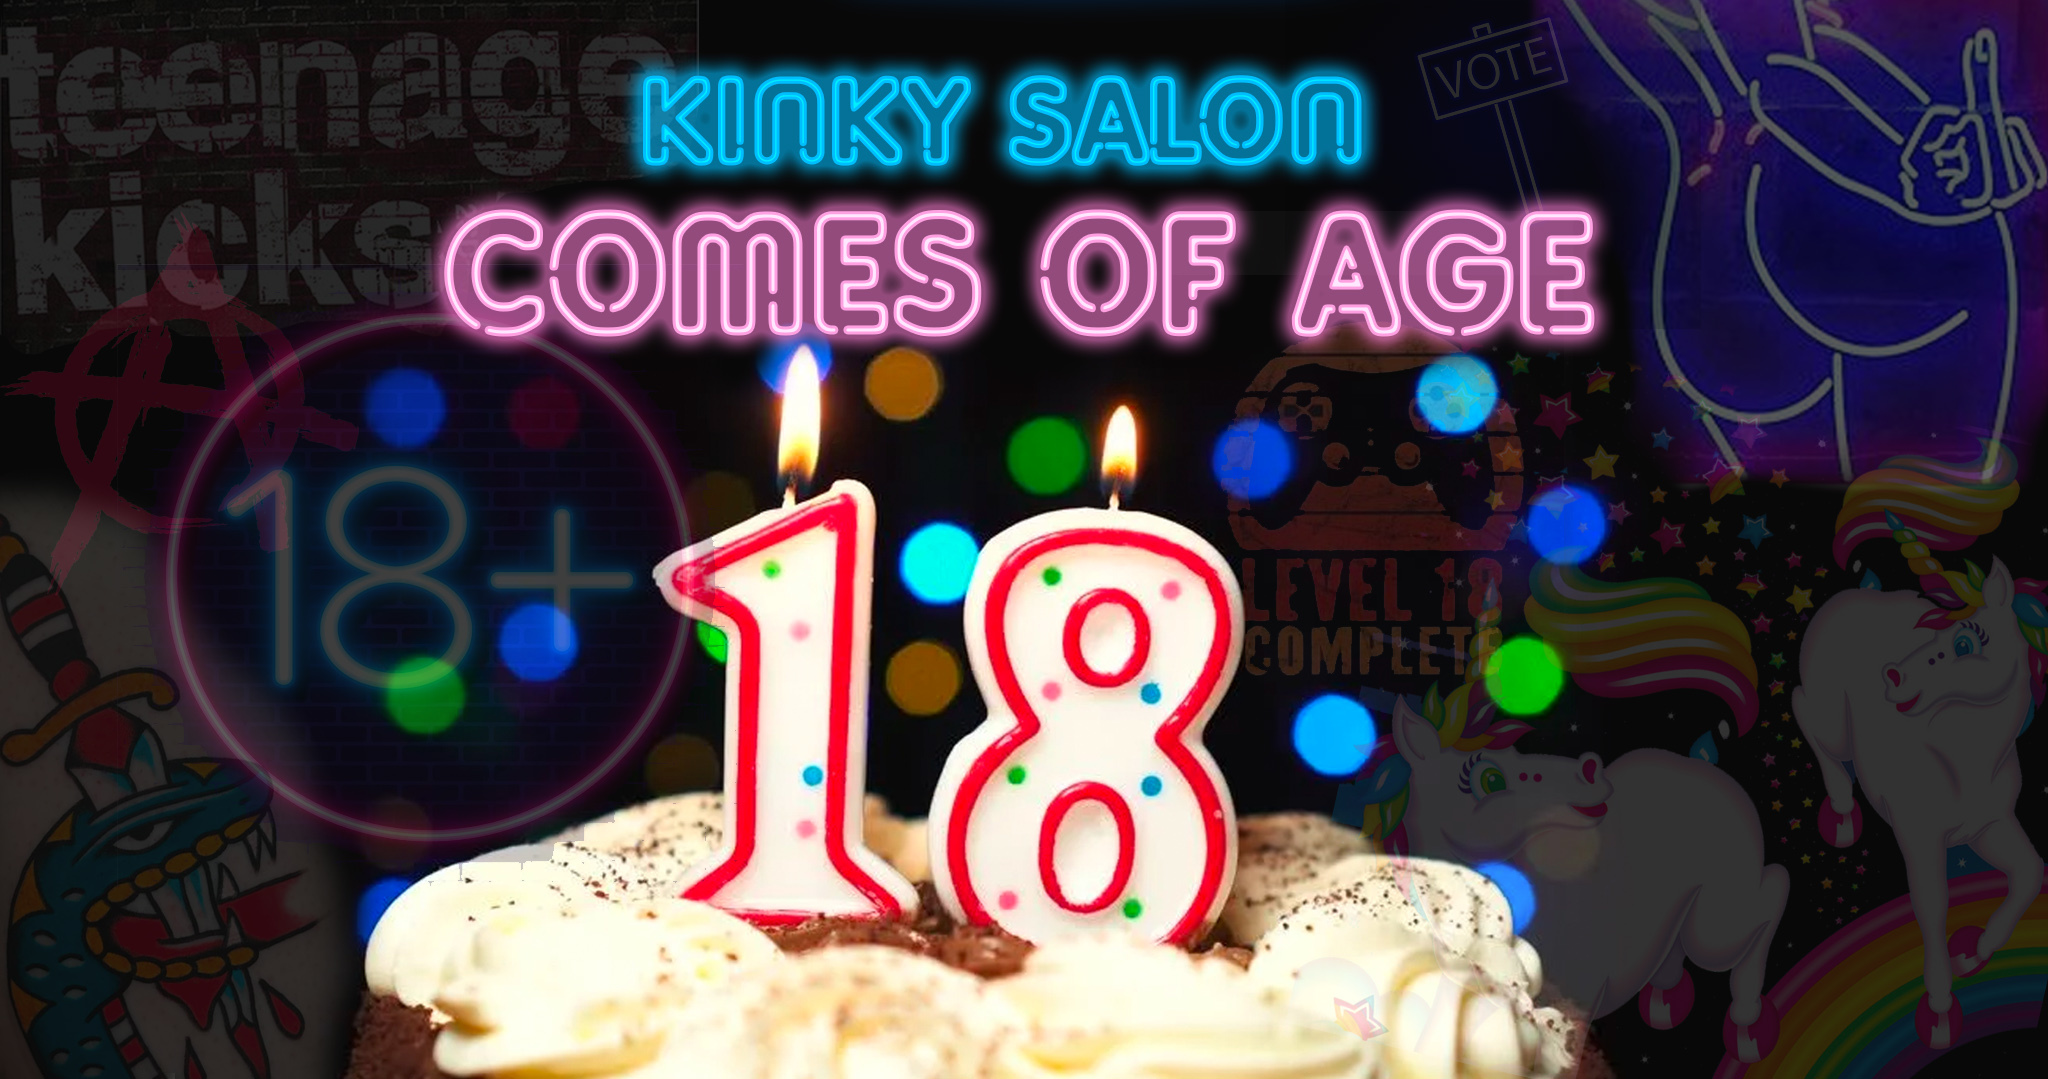 Kinky Salon Coming of Age 18 Year Anniversary